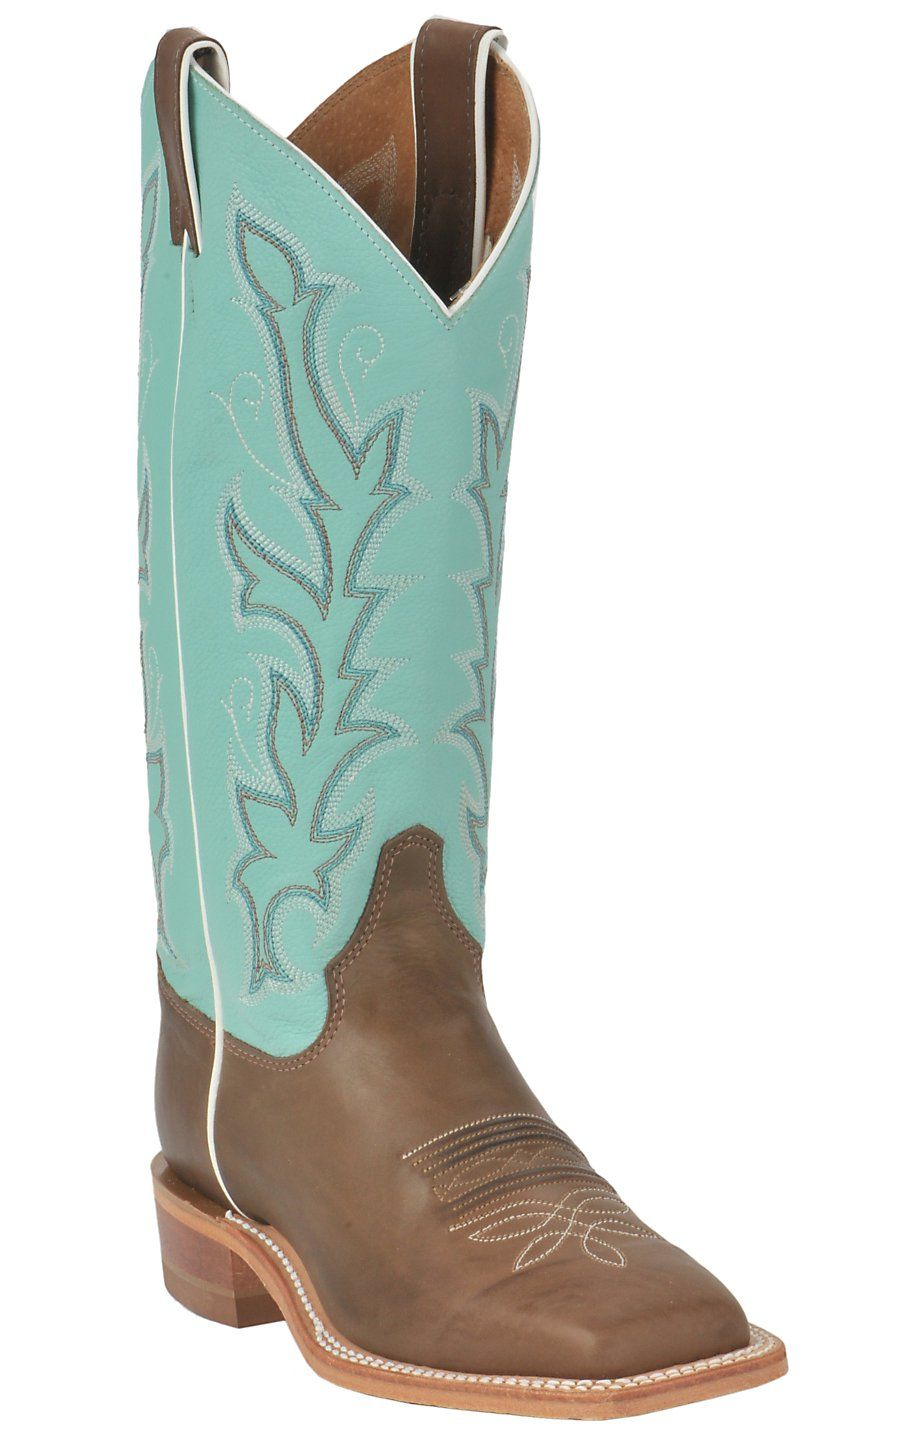 b975f85d4db Justin® Bent Rail™ Ladies Chocolate w/ Sea Green Top Square Toe ...